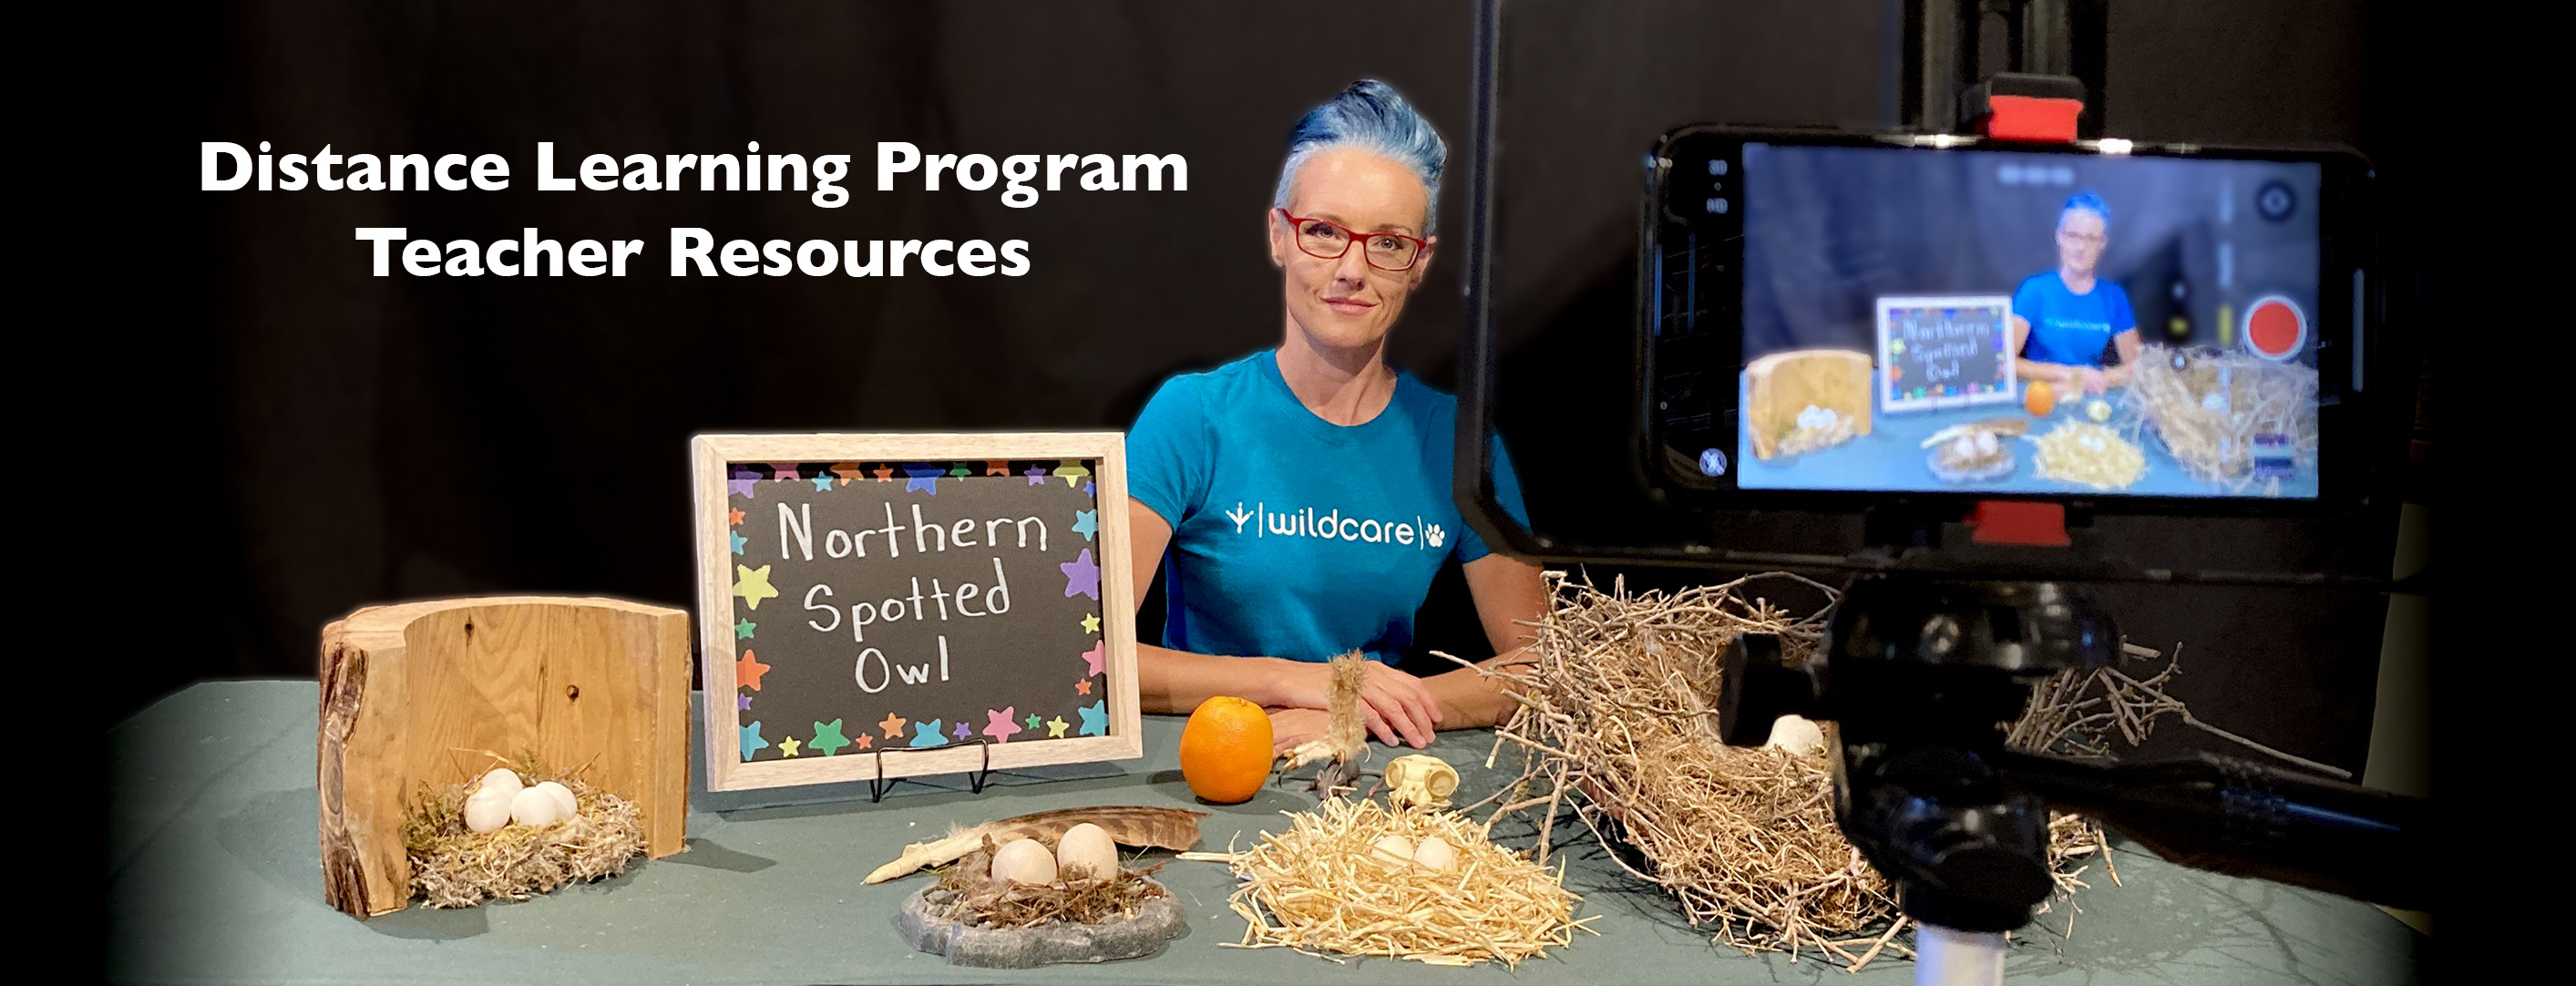 Distance Learning Program Teacher Resources